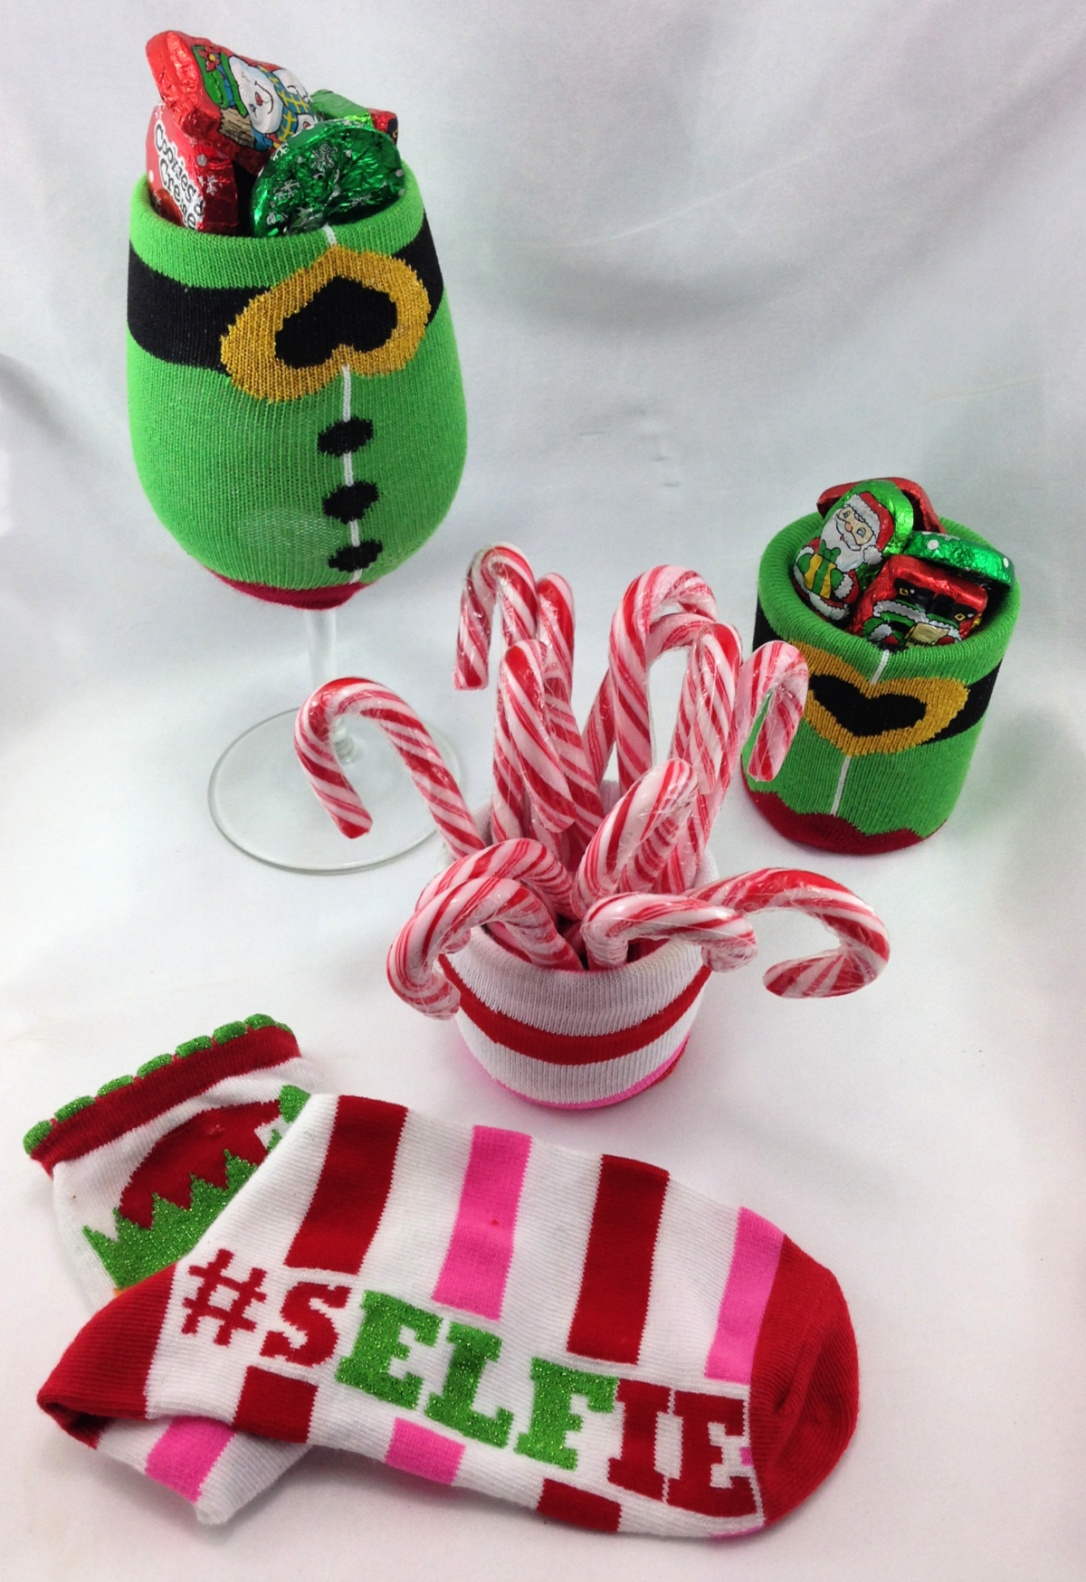 DIY Christmas Sock Vase, Candy Dish and Candle Cozies #Christmas #craft #DIY #Christmas_Sock #Vase #Candy_Dish #Candle #Cozies #repurposed #upcycle